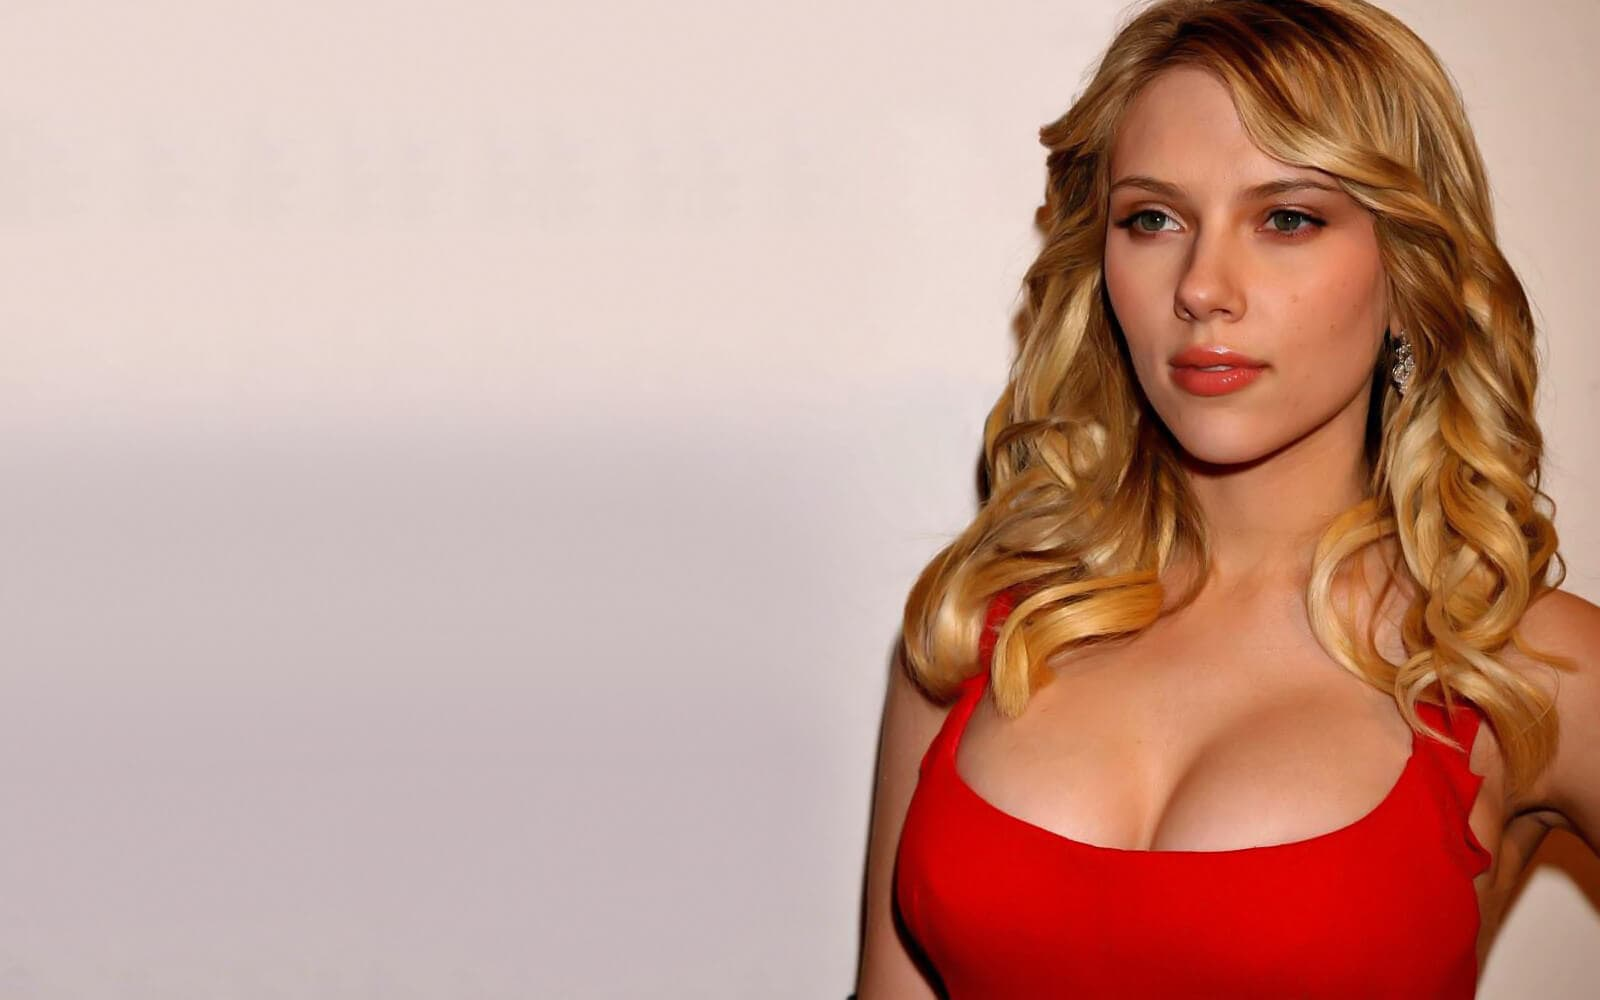 scarlett-johansson-hot-with-red-dress